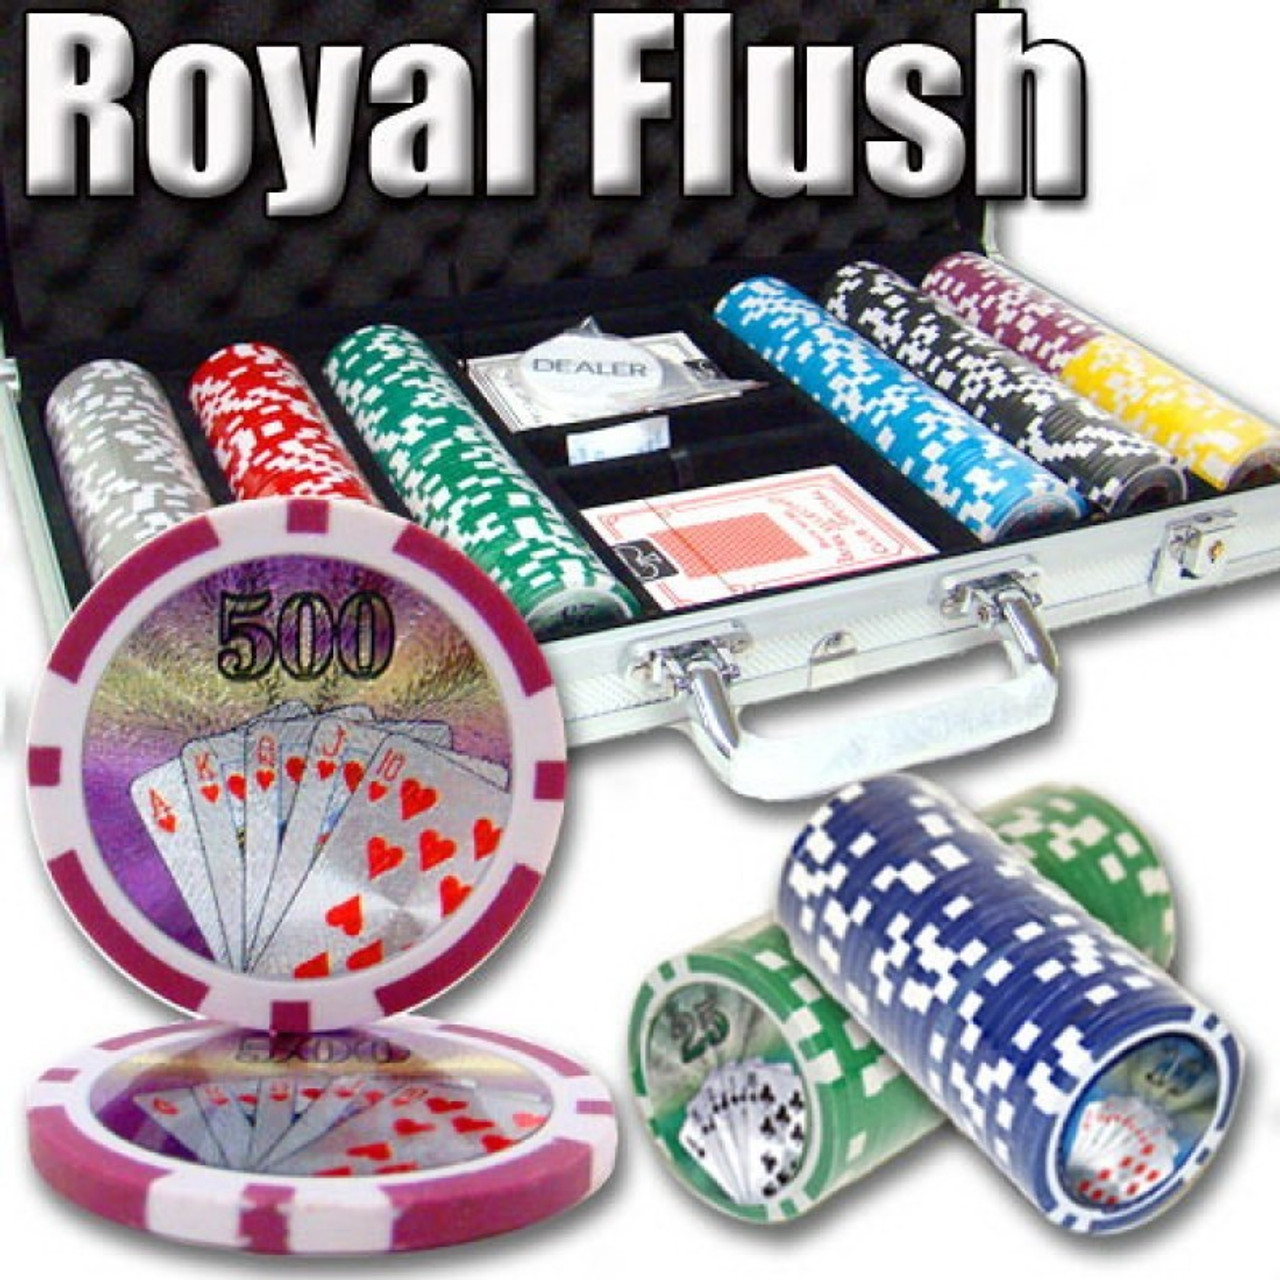 Poker Chip Set Royal Flush 300pc 11.5g with Carry Case & FREE OFFER